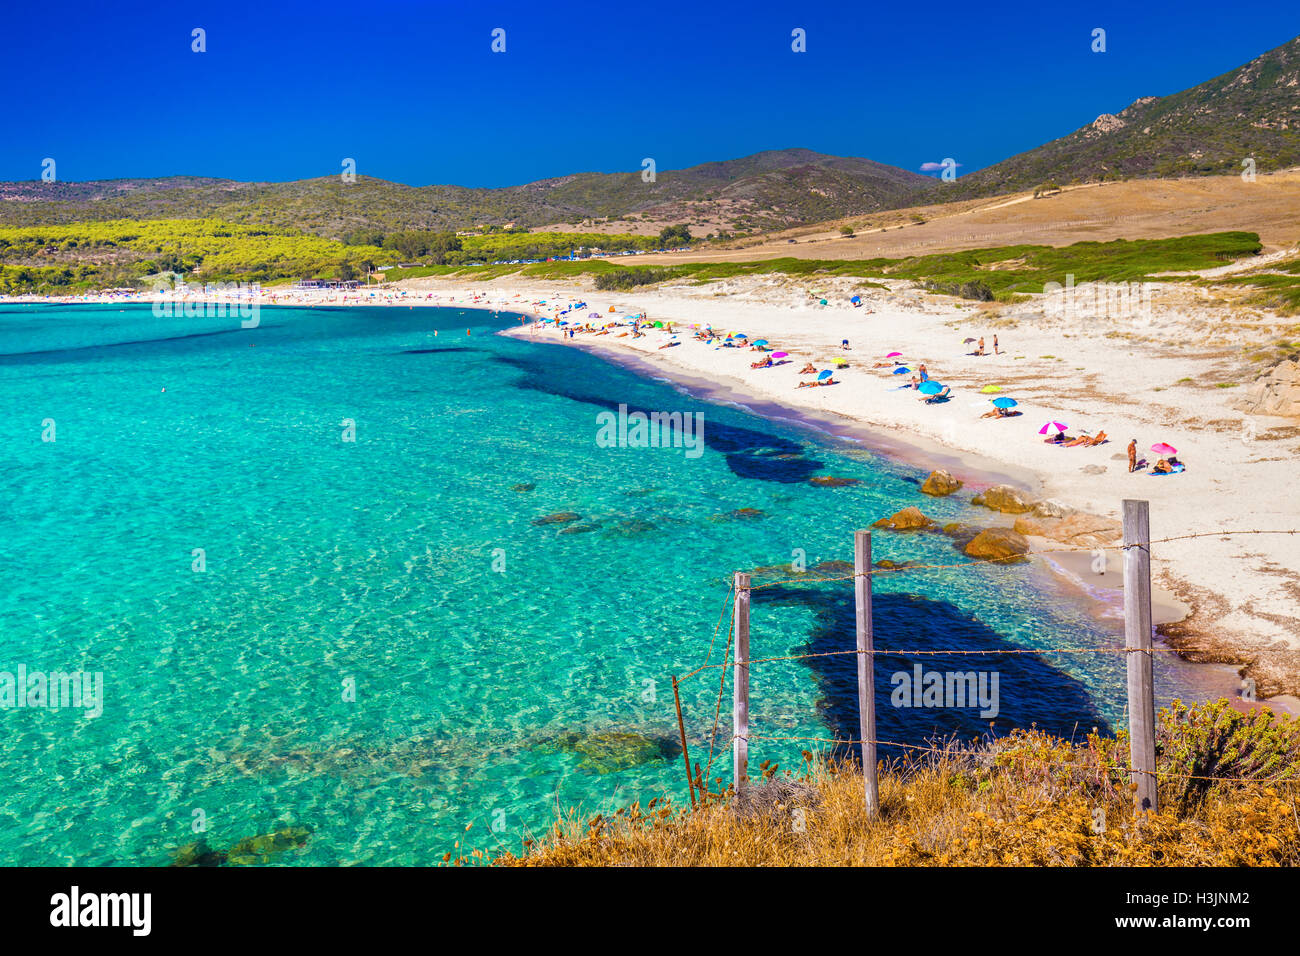 People enjoying the sunny weather on sandy Grand Capo beach with red rocks near Ajaccio, Corsica, Europe. Stock Photo